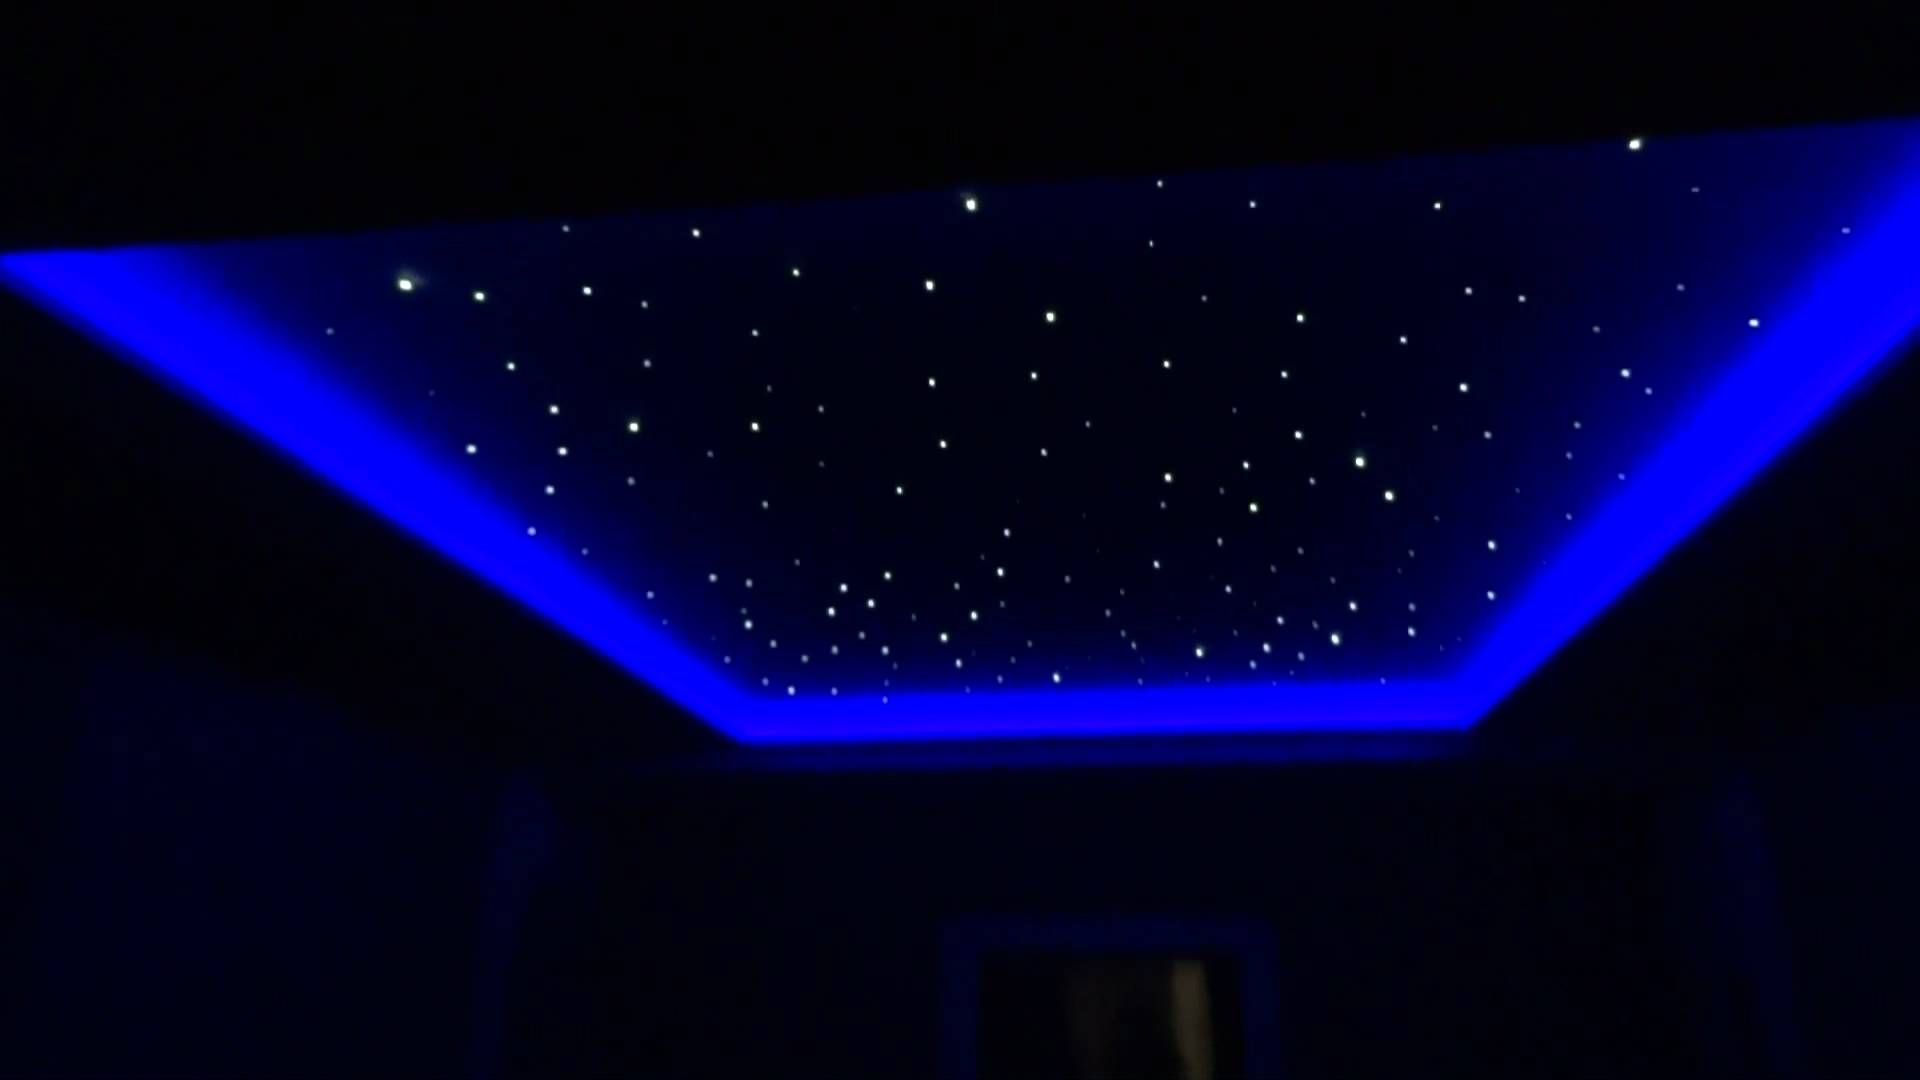 Night Light With Stars On Ceiling Night Light That Puts Stars On Ceiling My Profession Cinema